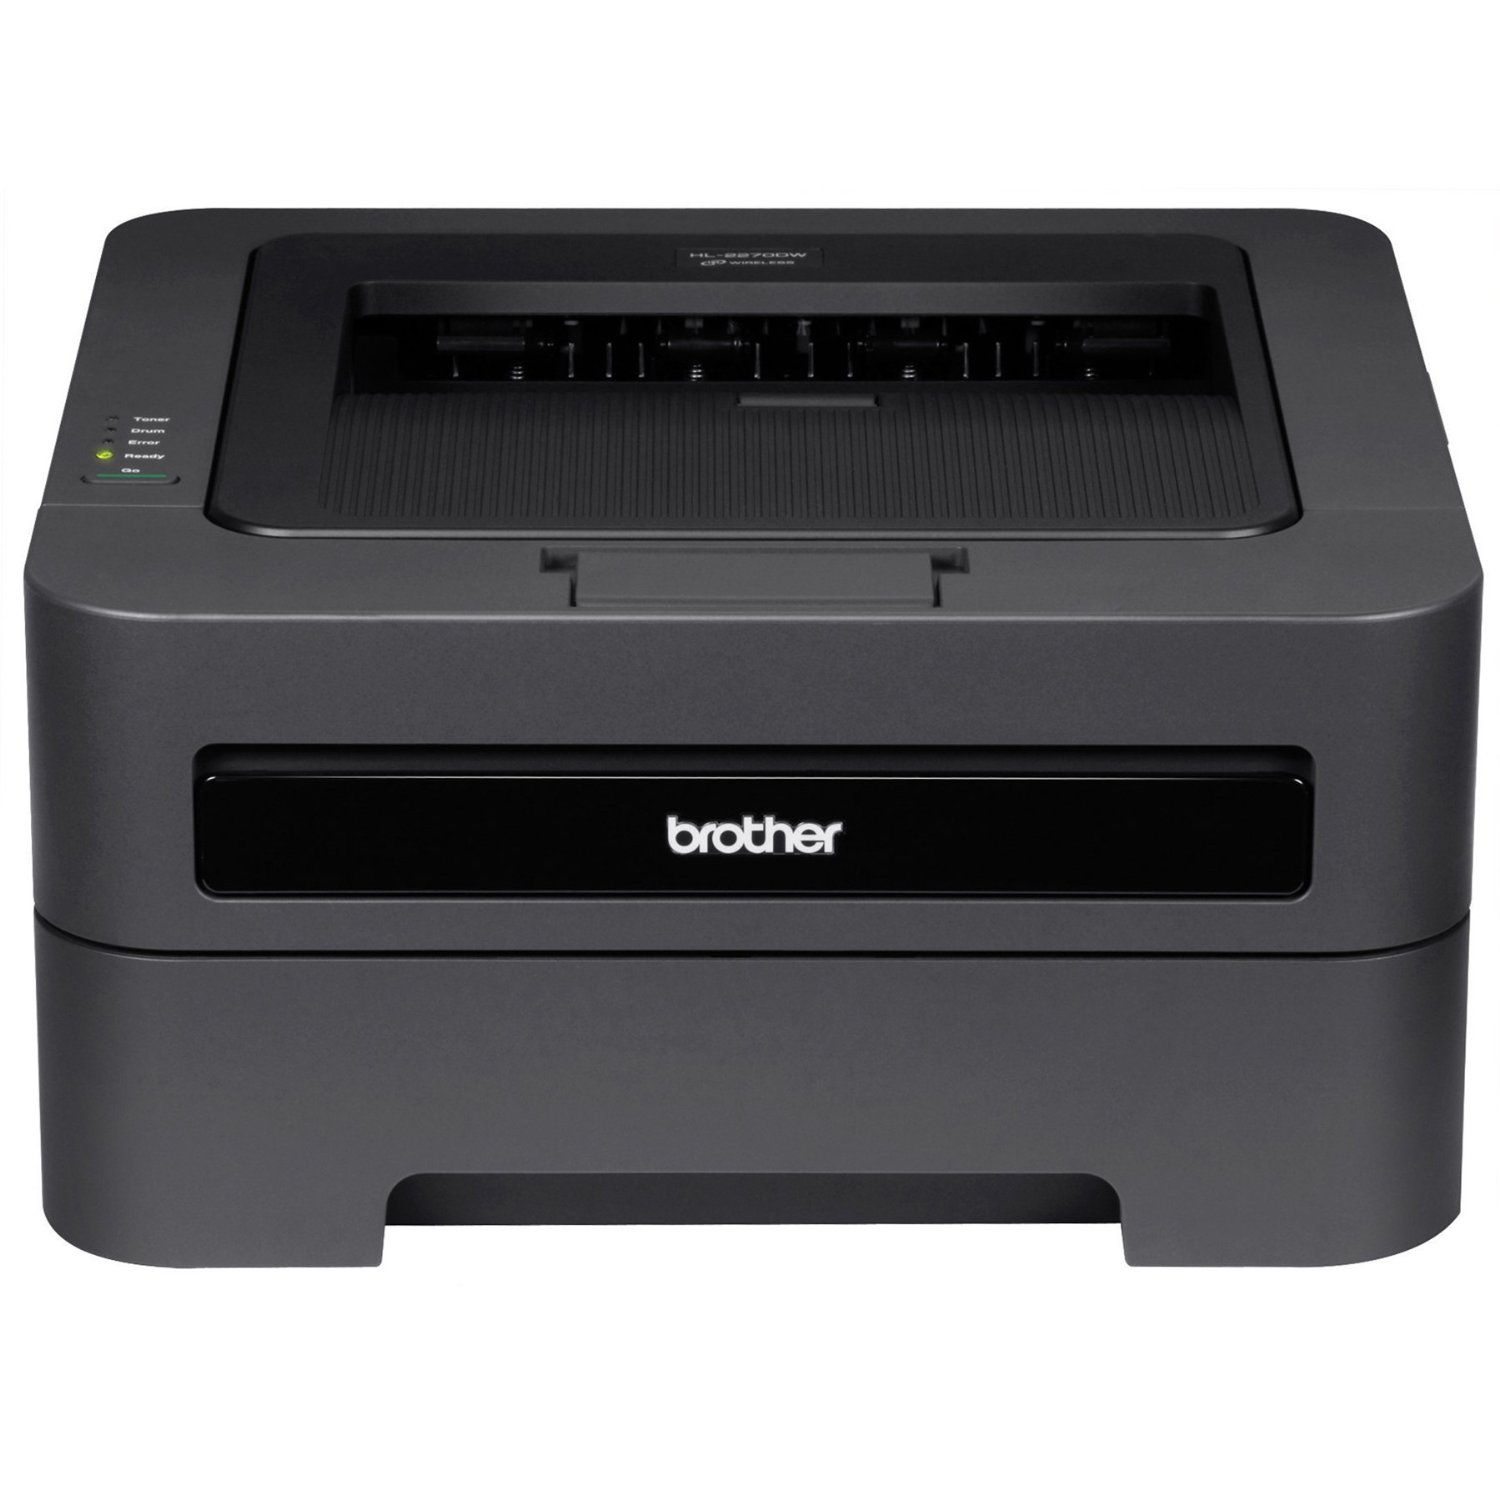 Brother compact laser printer